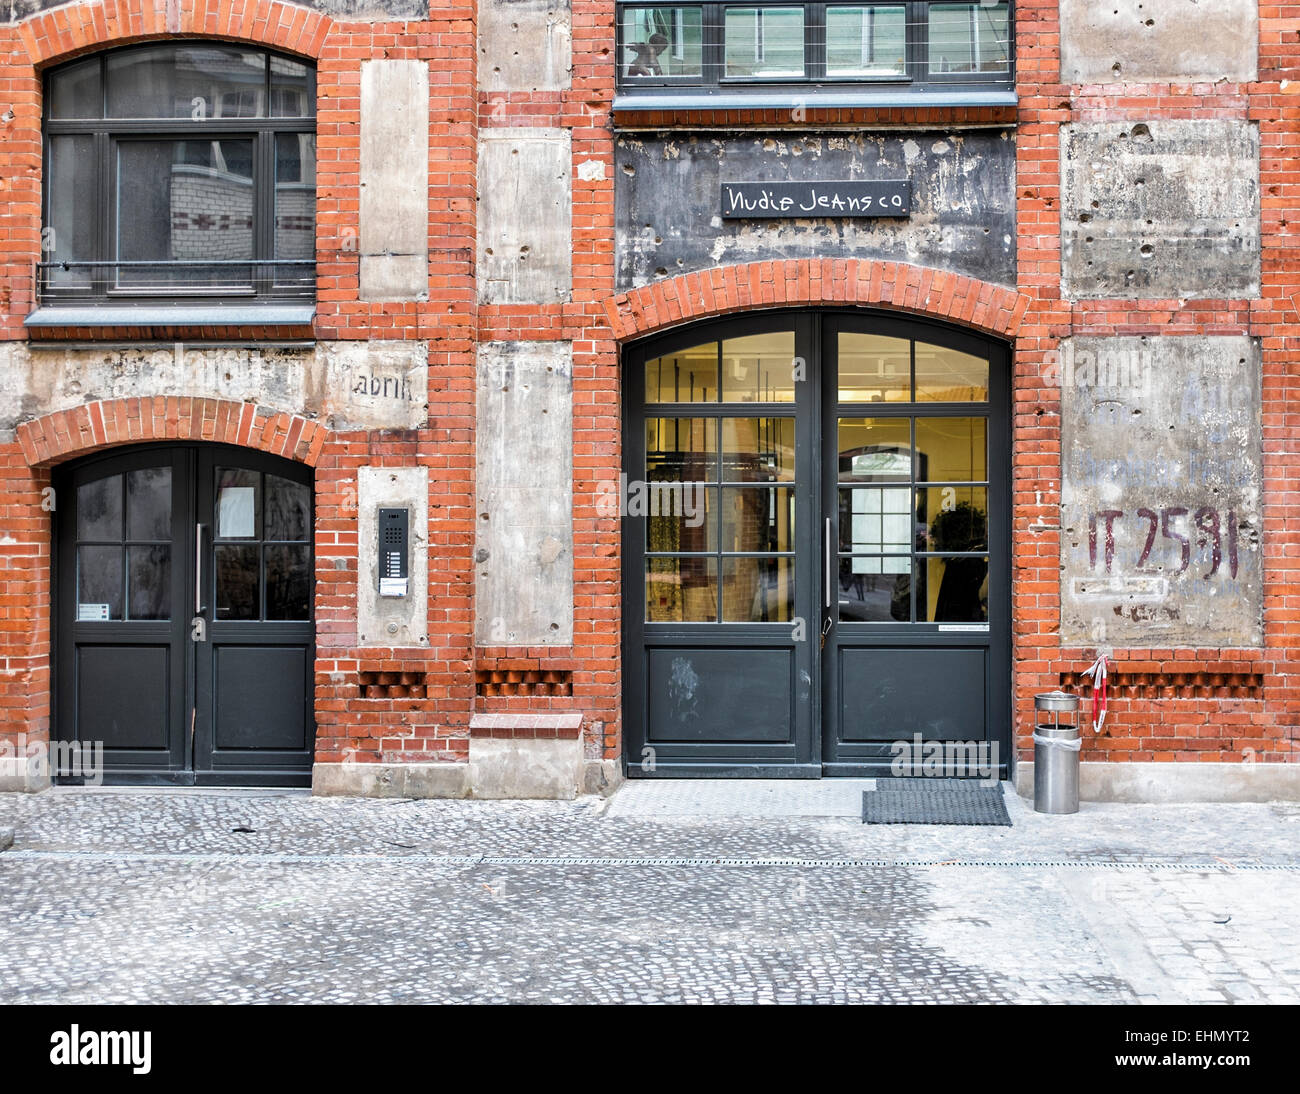 Nudie Jeans shop in inner courtyard of newly renovated old historic building, Mitte, Berlin - Stock Image